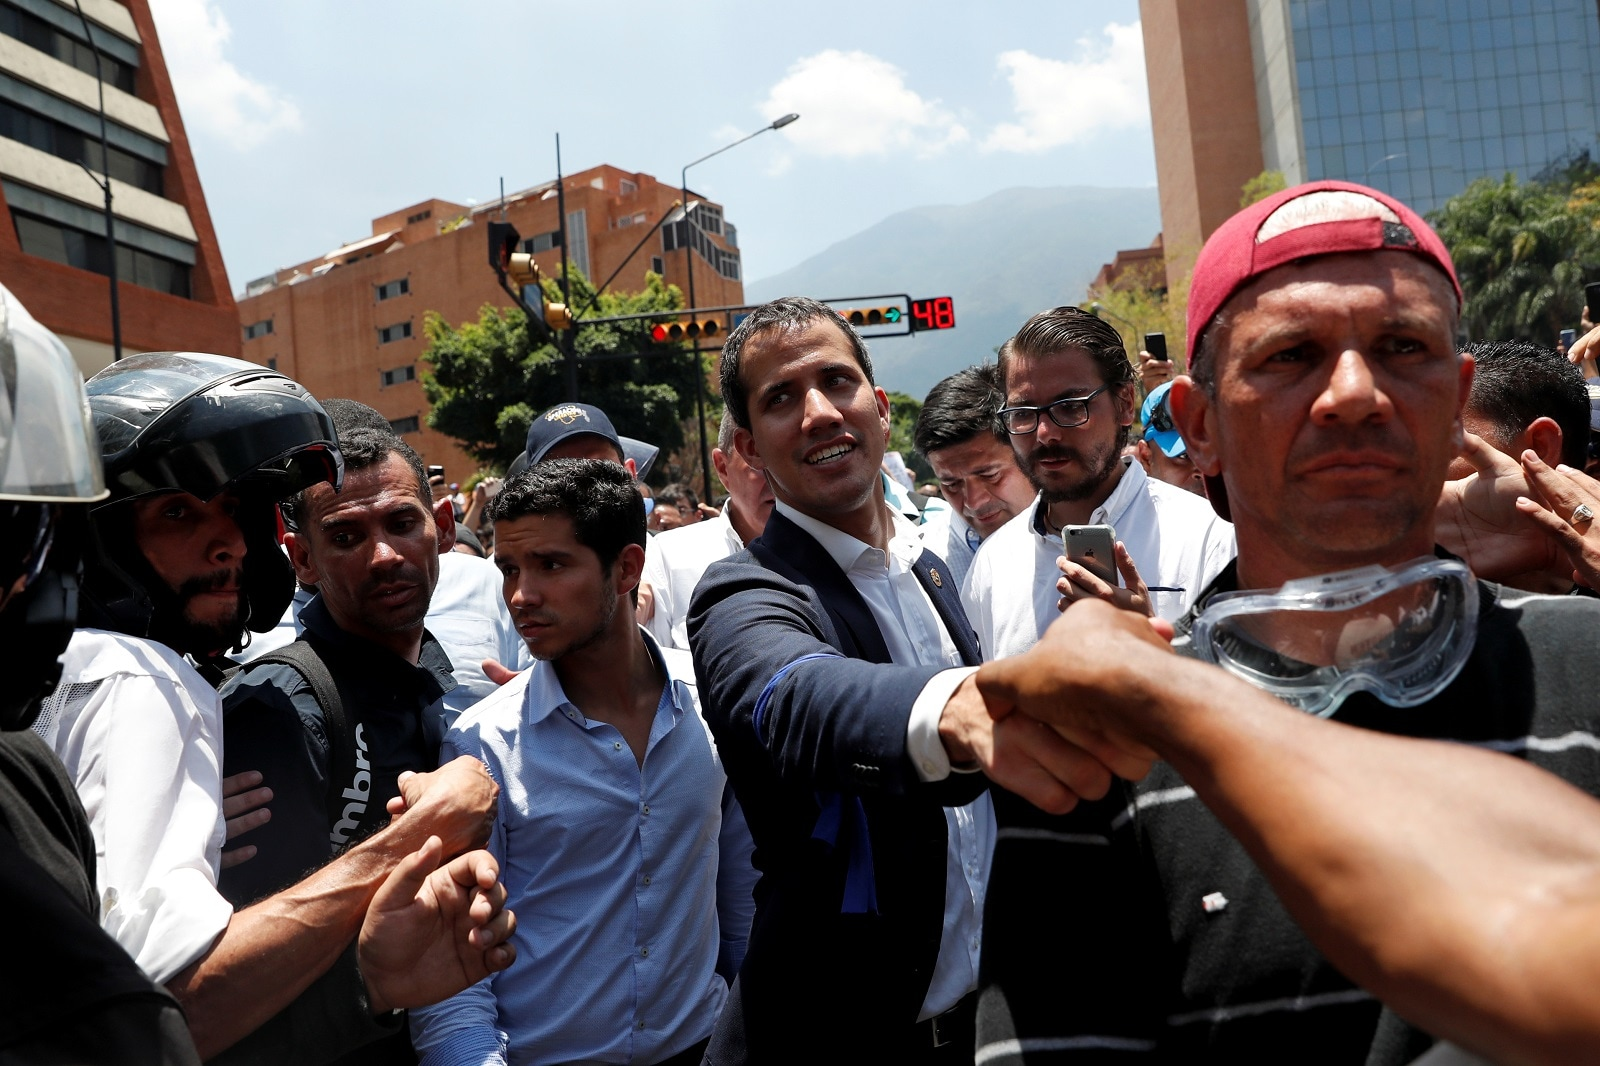 Venezuelan opposition leader Juan Guaido, who many nations have recognised as the country's rightful interim ruler, walks with supporters in Caracas, Venezuela April 30, 2019. REUTERS/Carlos Garcia Rawlins